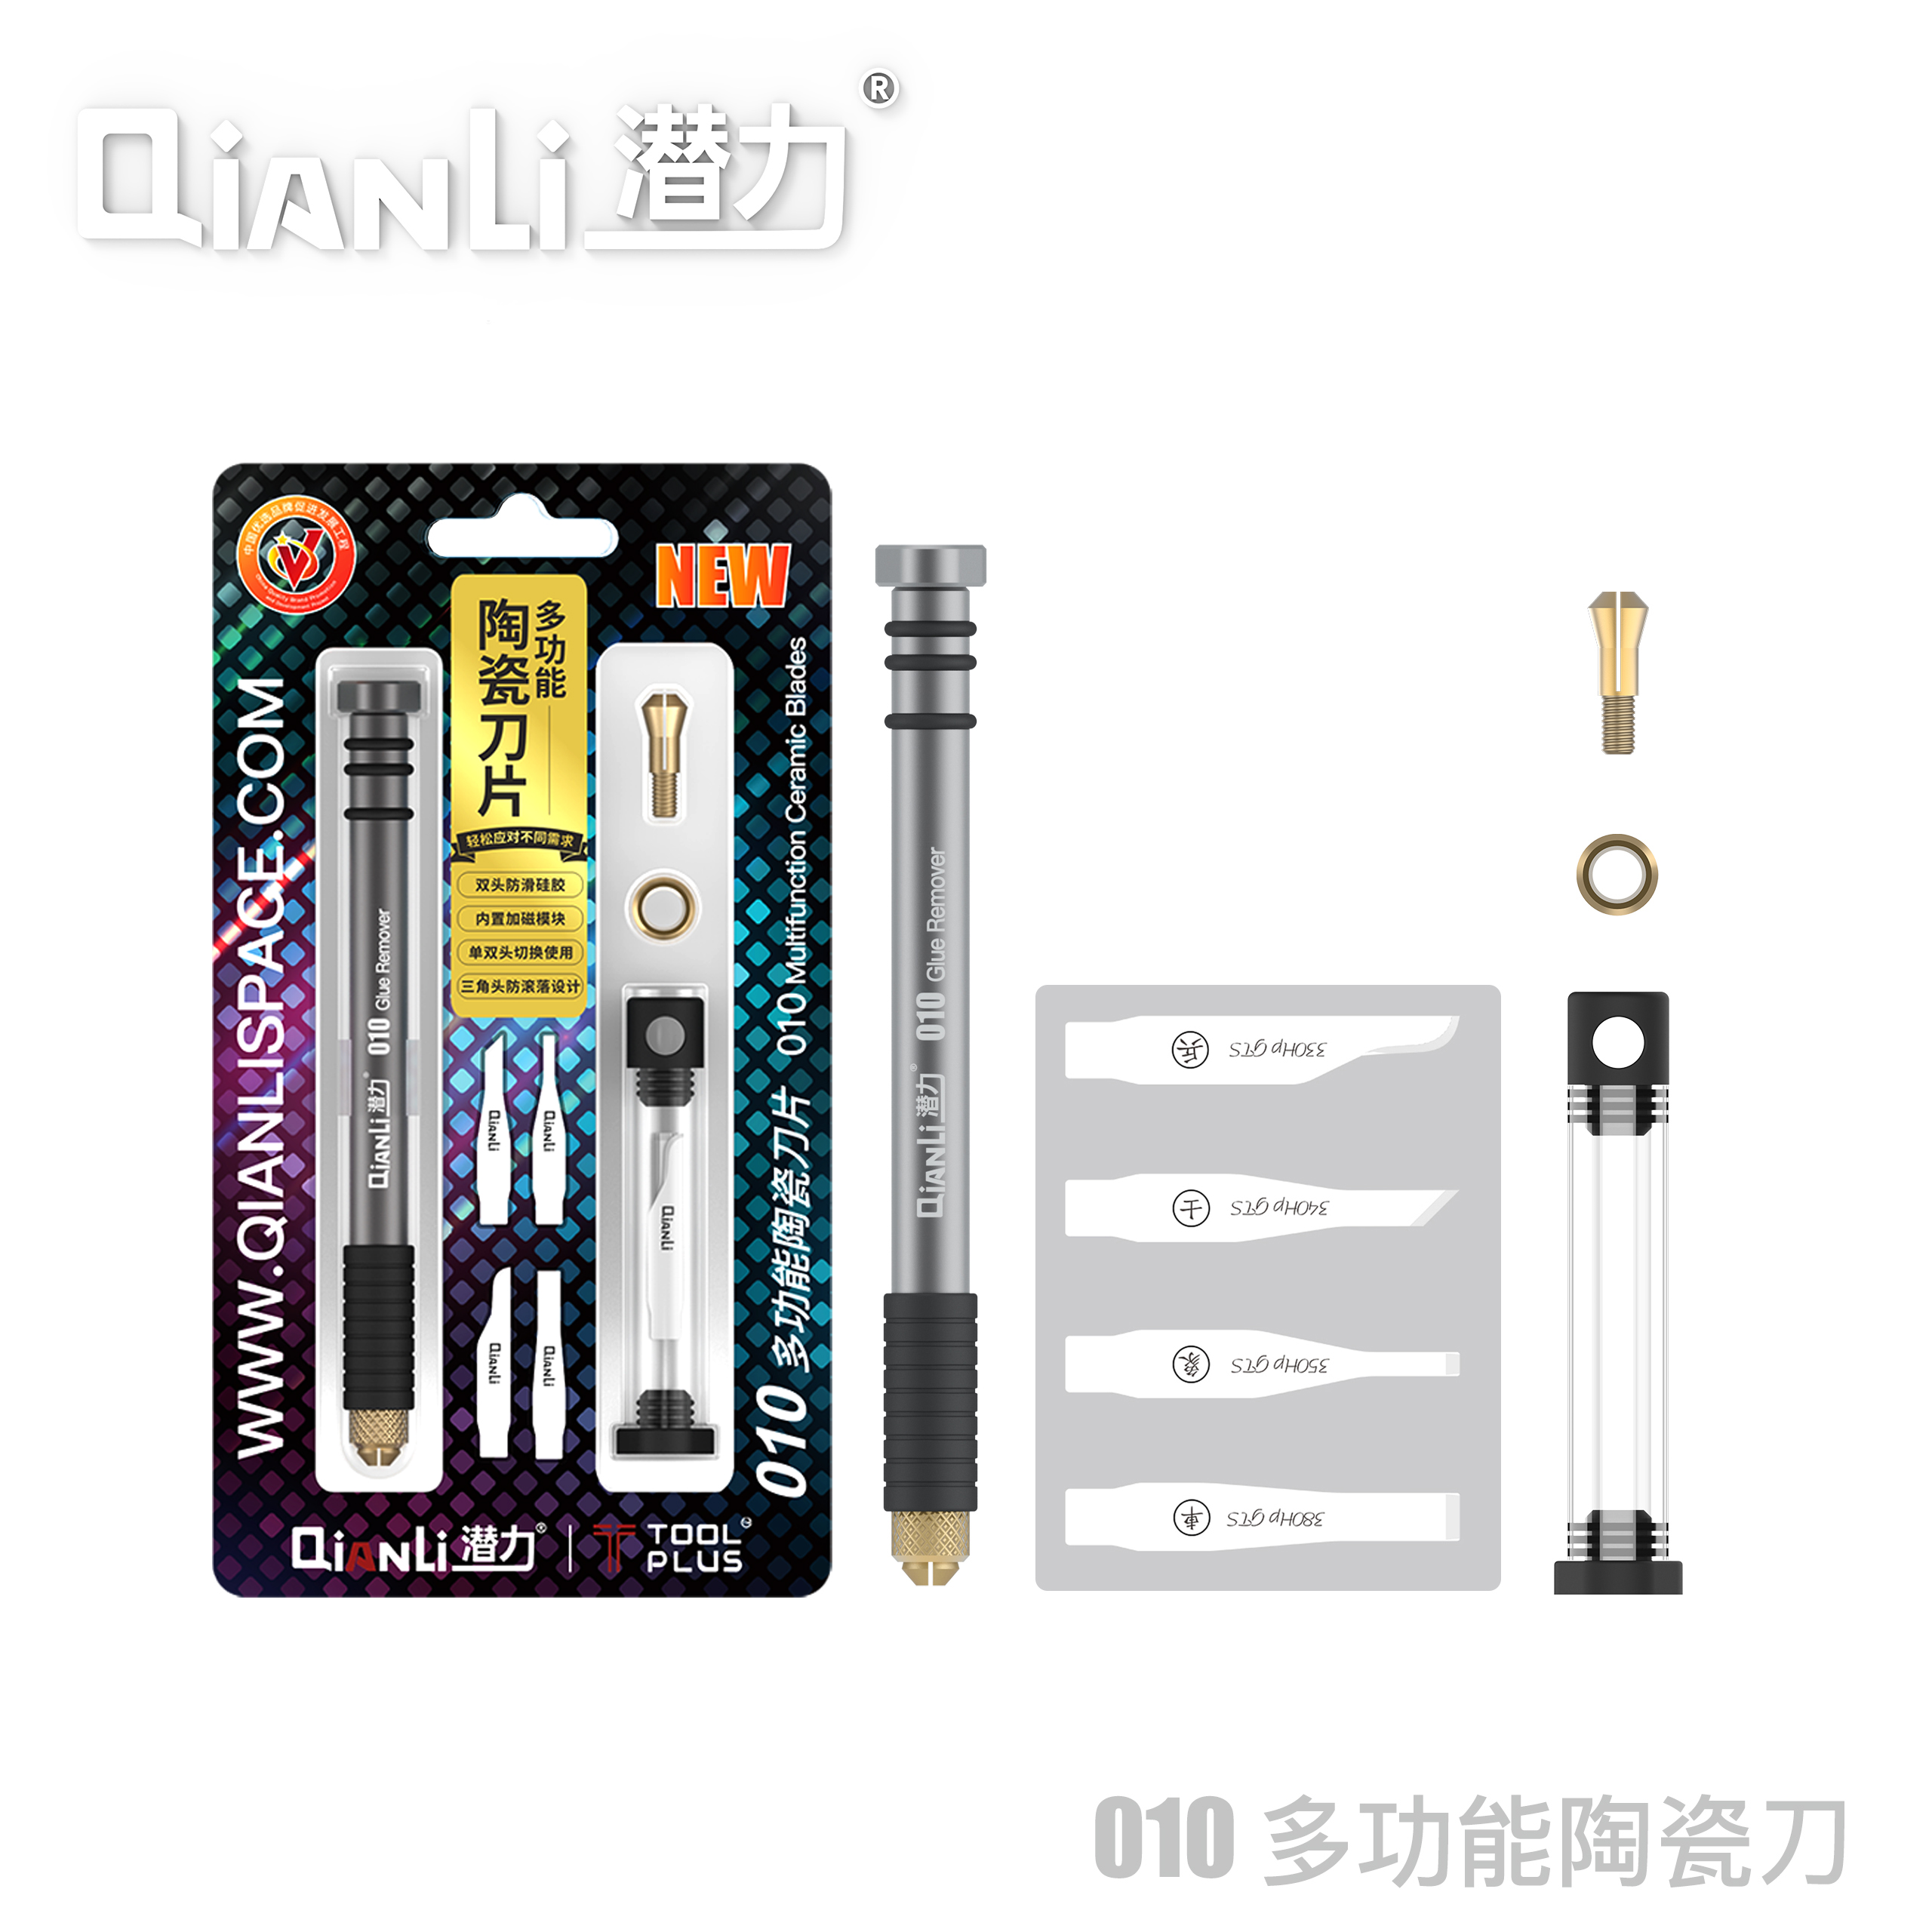 Newest QianLi ToolPlus 010 Ceramic Knife Mobile Phone Mainboard IC CHIP Glue Removal Blade Multifunctional Antistatic Blades